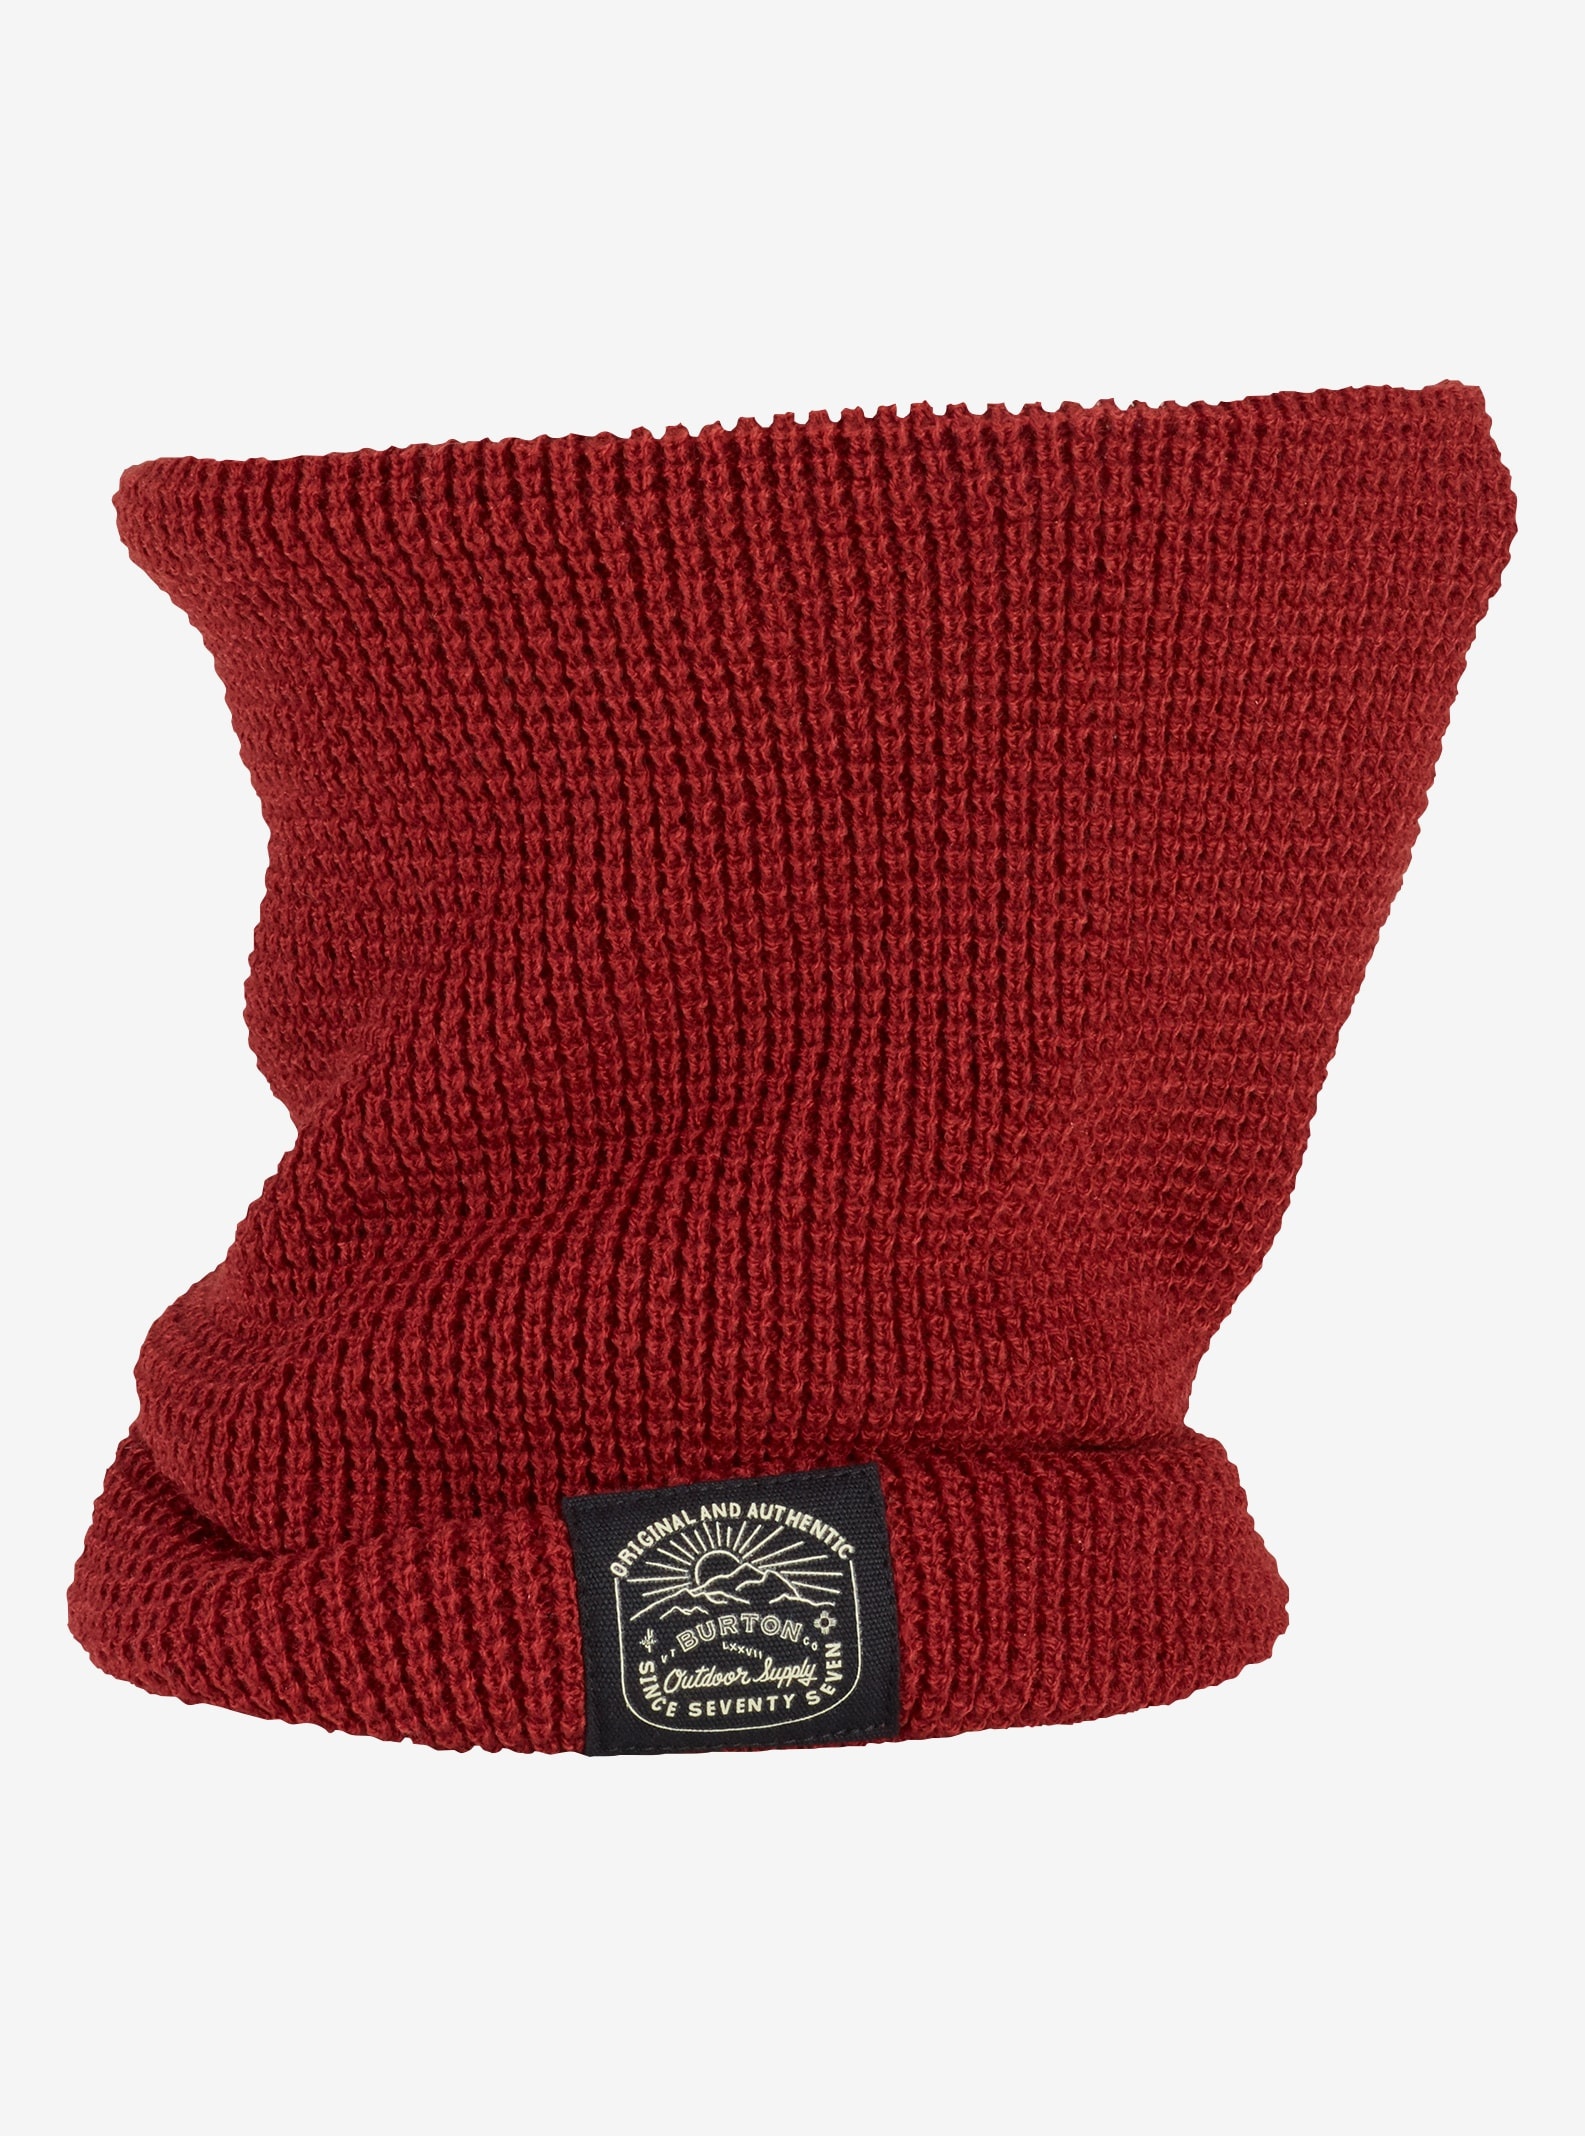 Burton Waffle Neck Warmer shown in Fired Brick